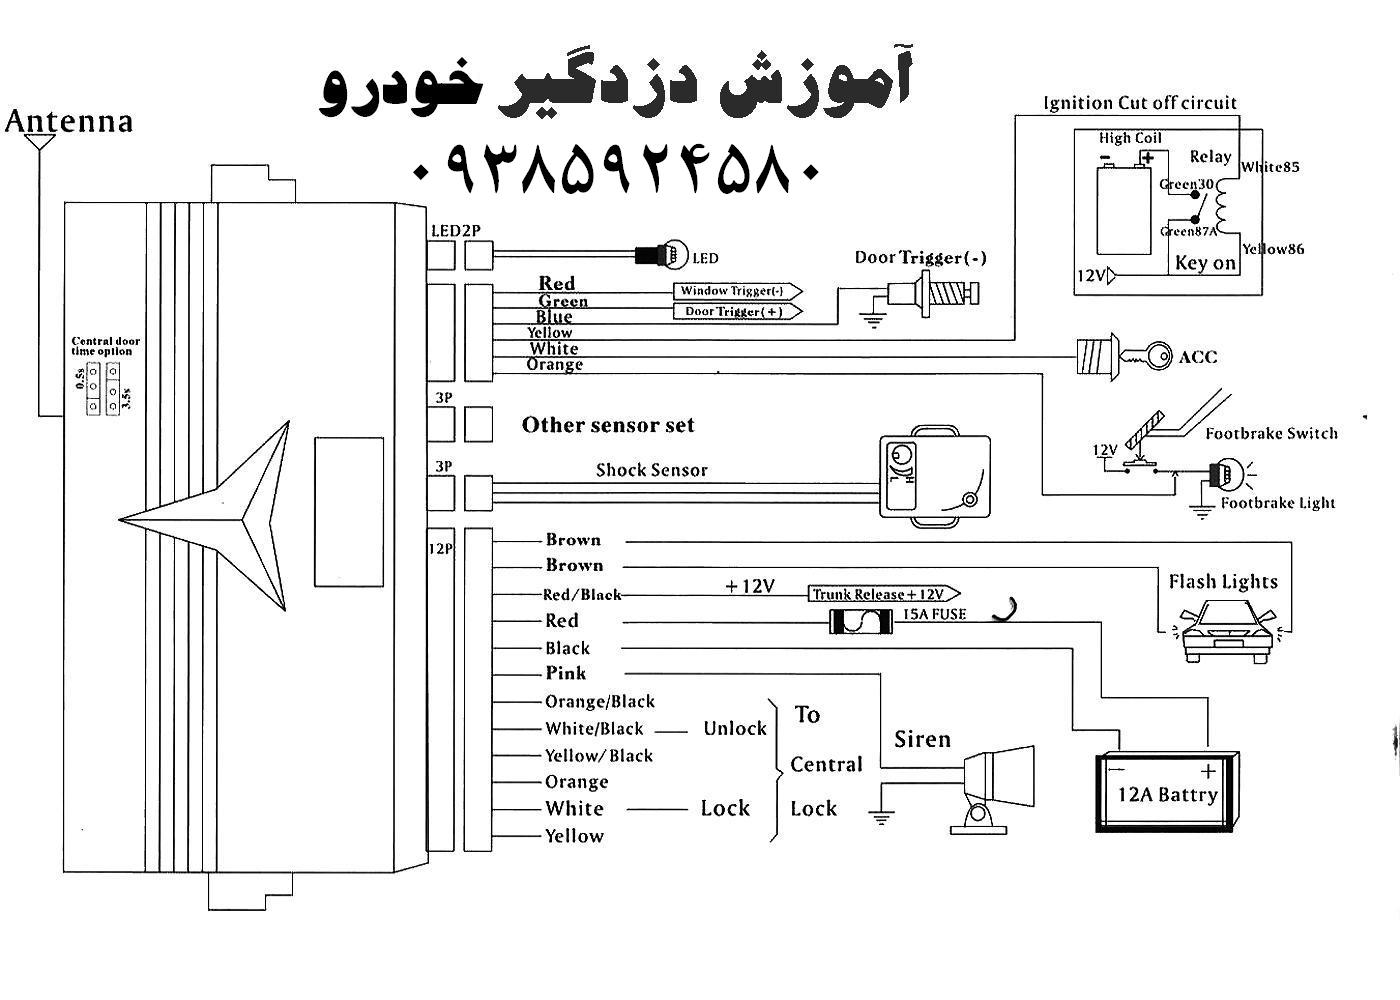 car alarm map (10) wiring diagram for viper car alarm efcaviation com viper 3100 wiring diagram at bayanpartner.co